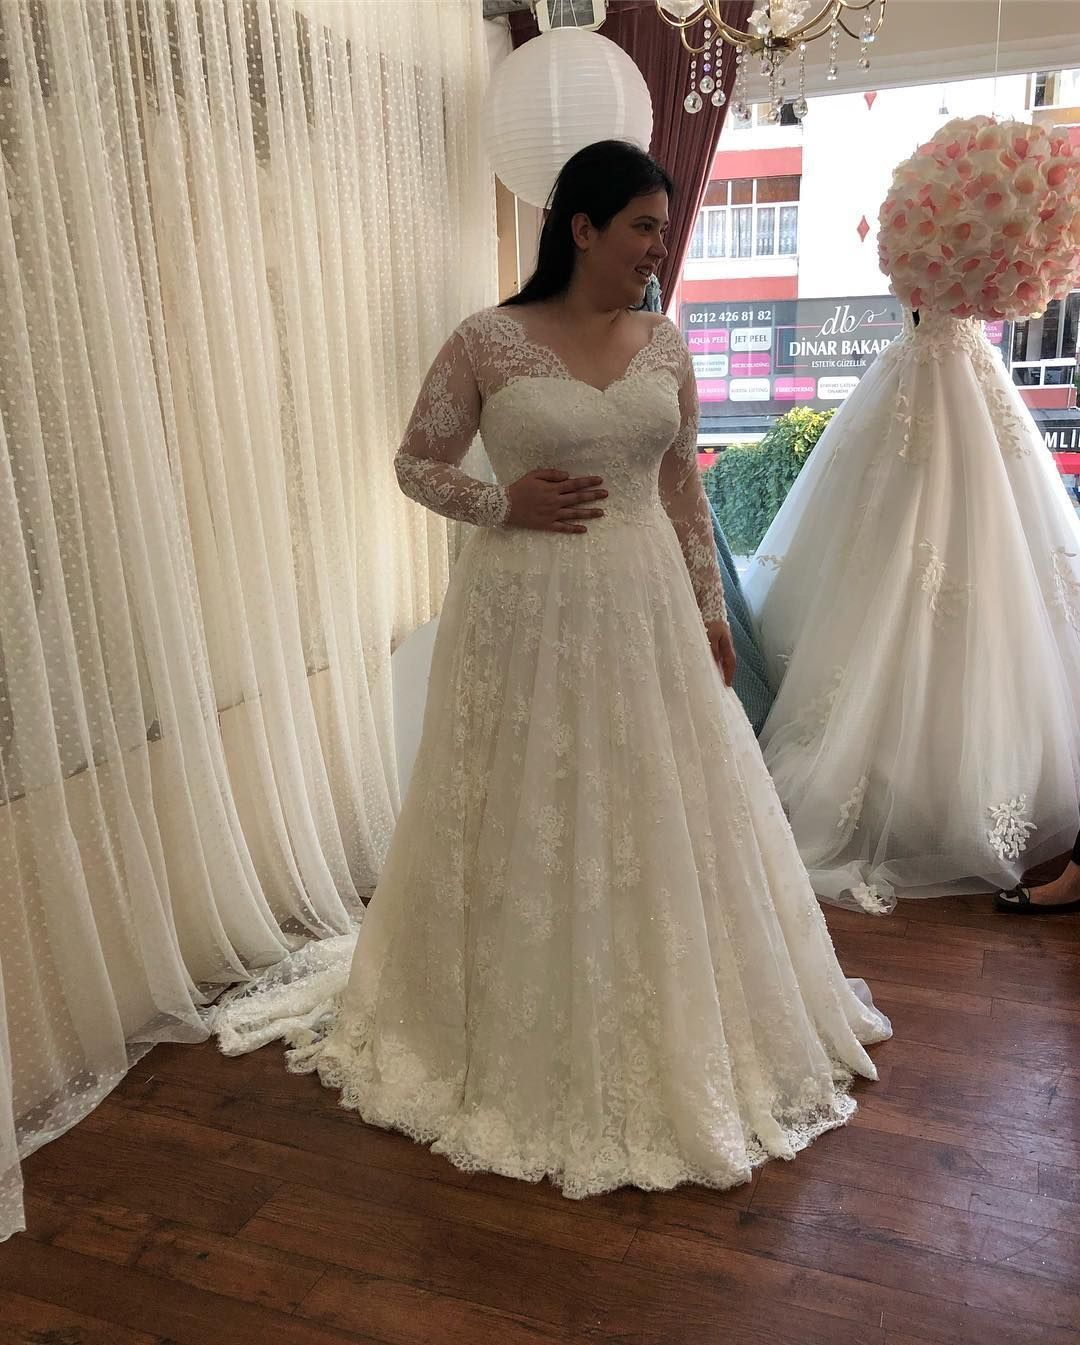 Designer Wedding Gowns For Less: Designer Of Wedding Gowns, Evening Dresses & Replications